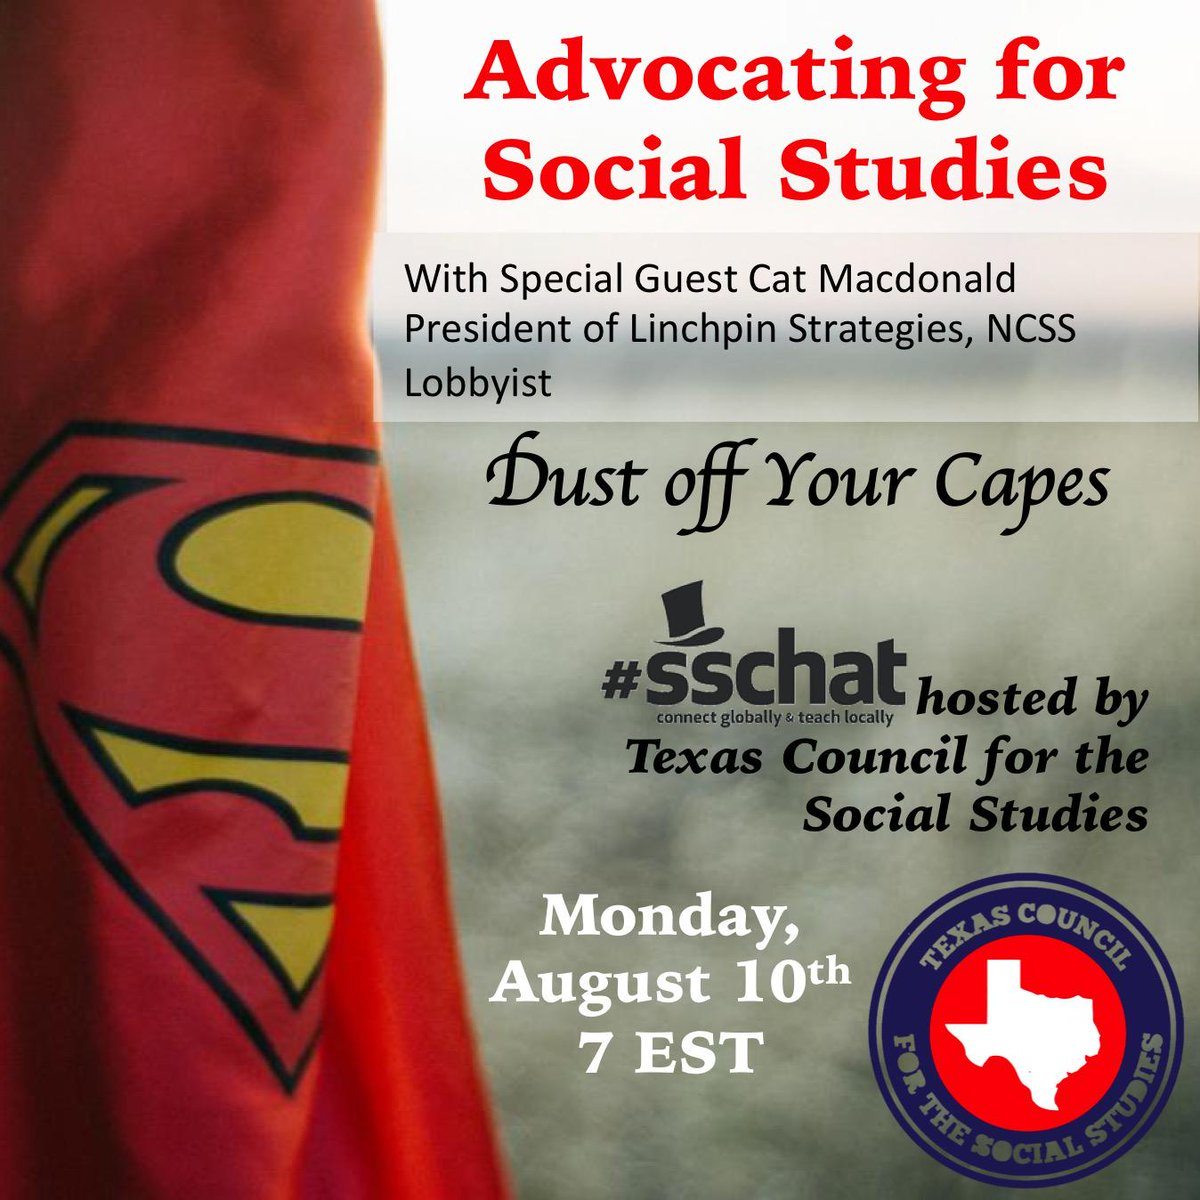 #ESEA will be in Joint Committee learn how to make your voice heard. #sschat http://t.co/jUHLl6zZhx